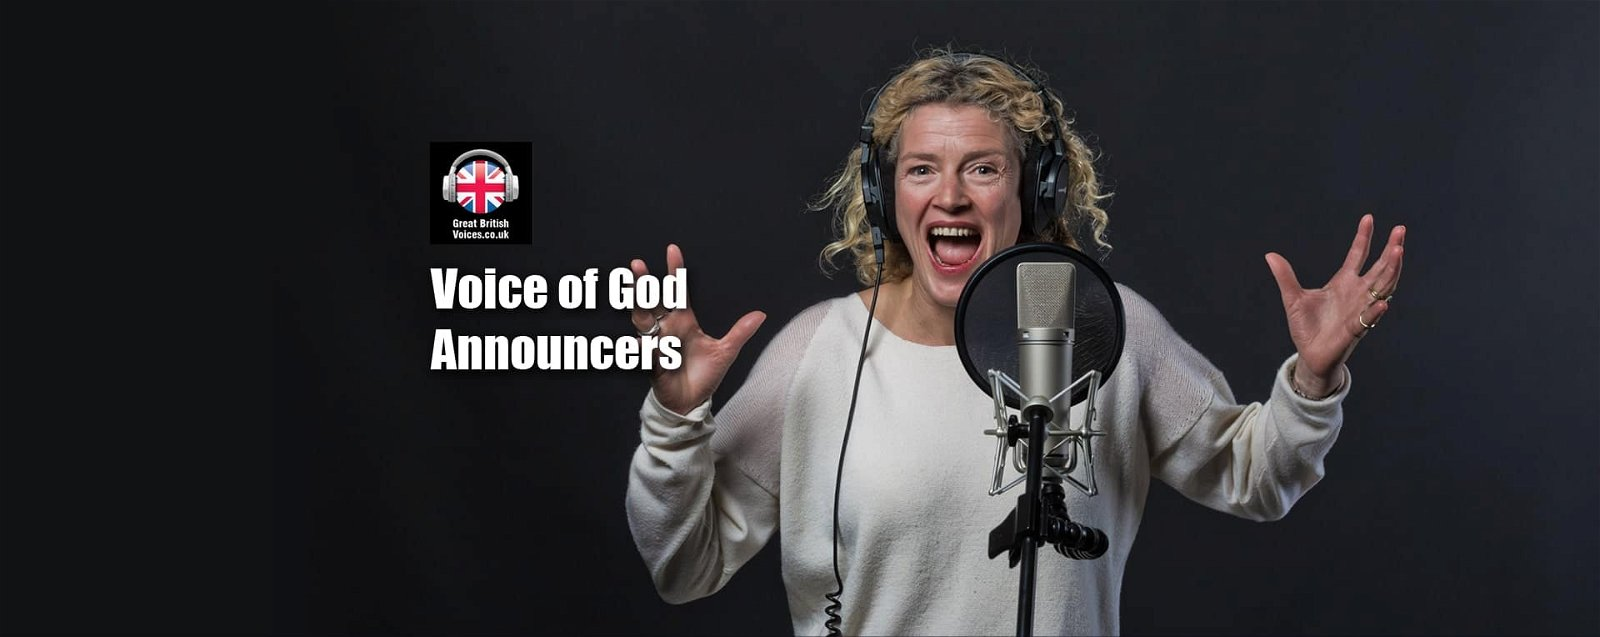 Voice of God Announcers at Great British Voices-min